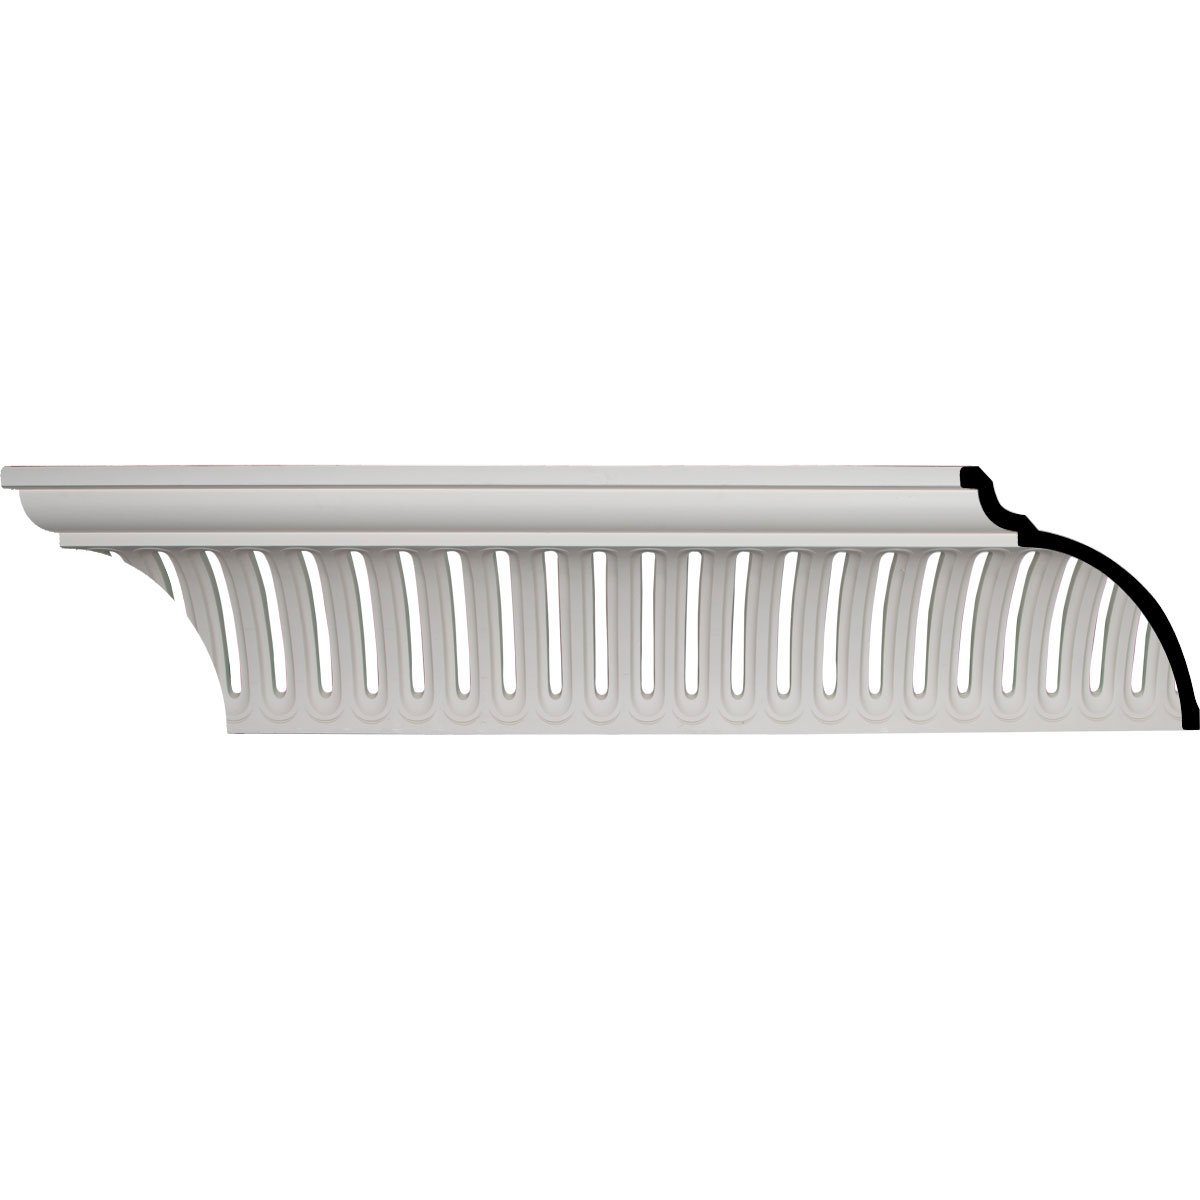 Ekena Millwork MLD11X10X15MB-CASE-12 11-3/8'' H x 10-7/8'' P x 15-7/8'' F x 95-7/8'' L Melbourne Crown Molding (12-Pack)